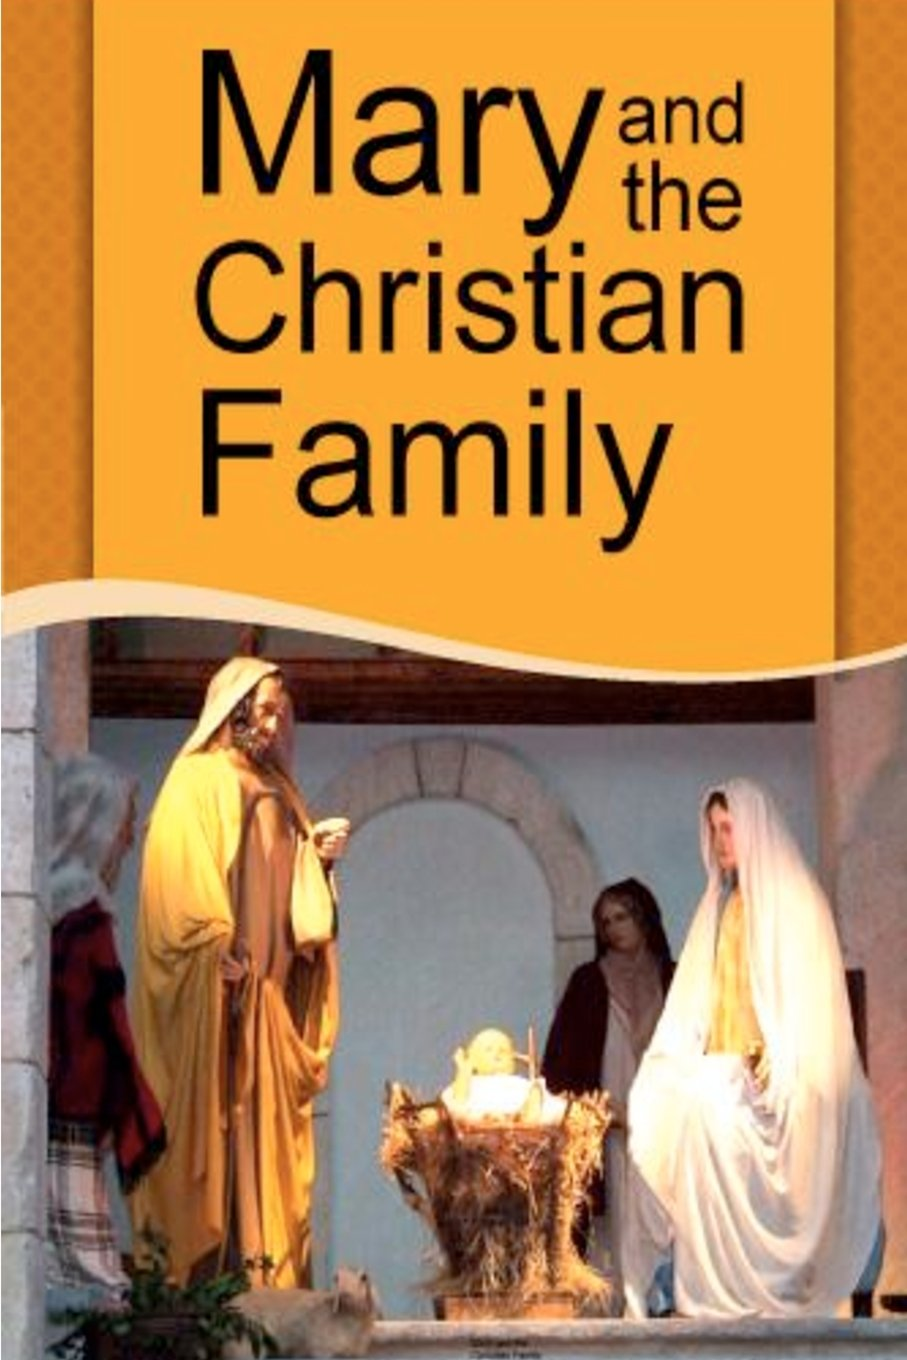 Mary and the Christian Family